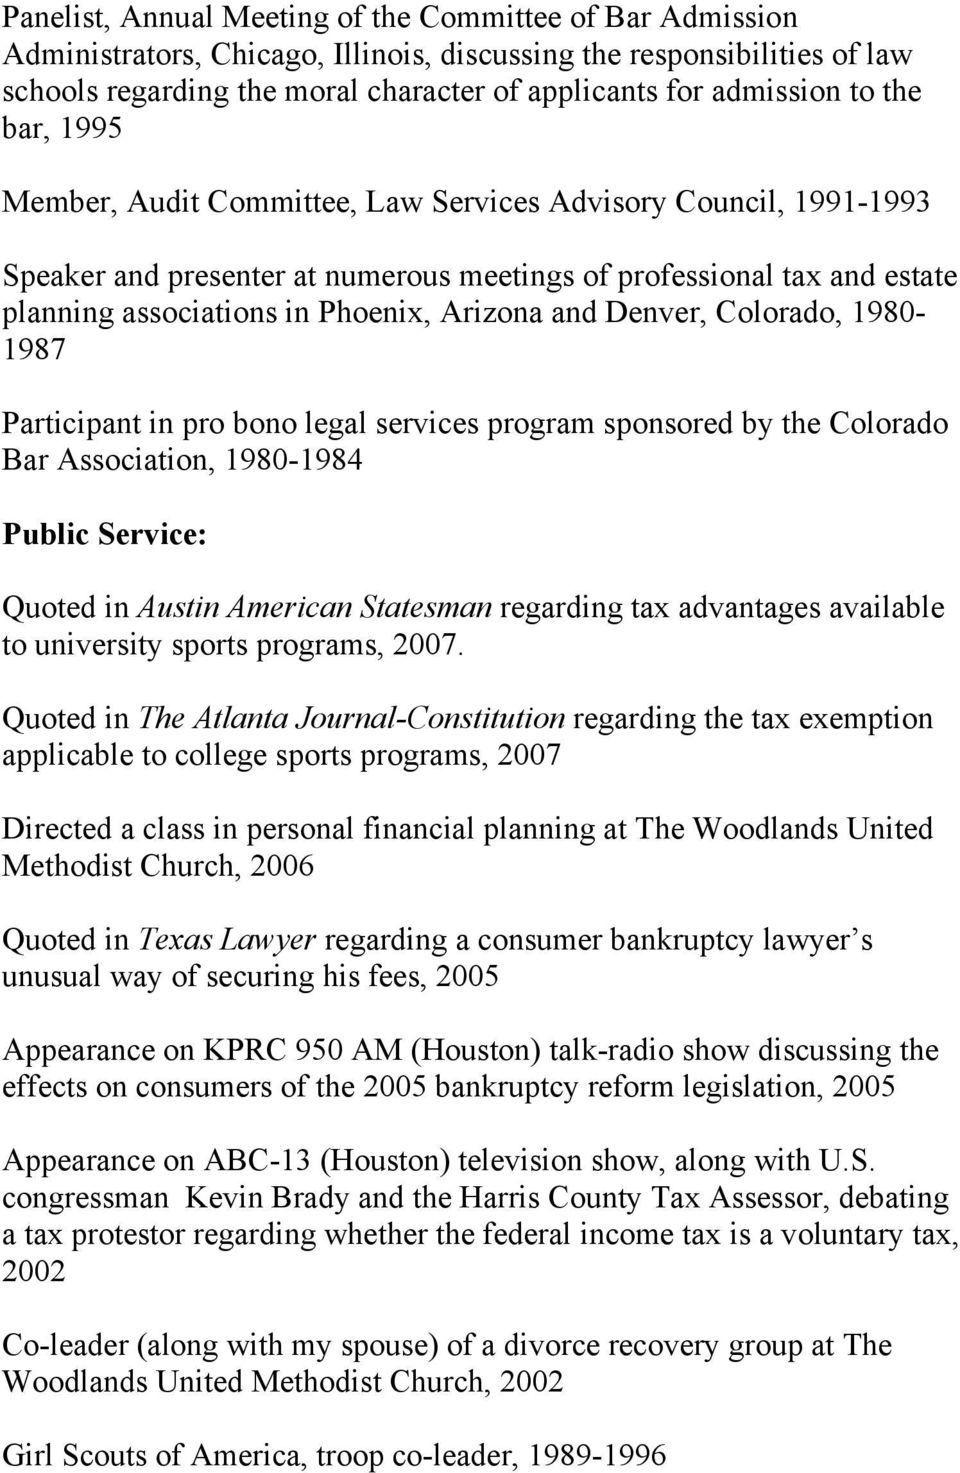 and Denver, Colorado, 1980-1987 Participant in pro bono legal services program sponsored by the Colorado Bar Association, 1980-1984 Public Service: Quoted in Austin American Statesman regarding tax